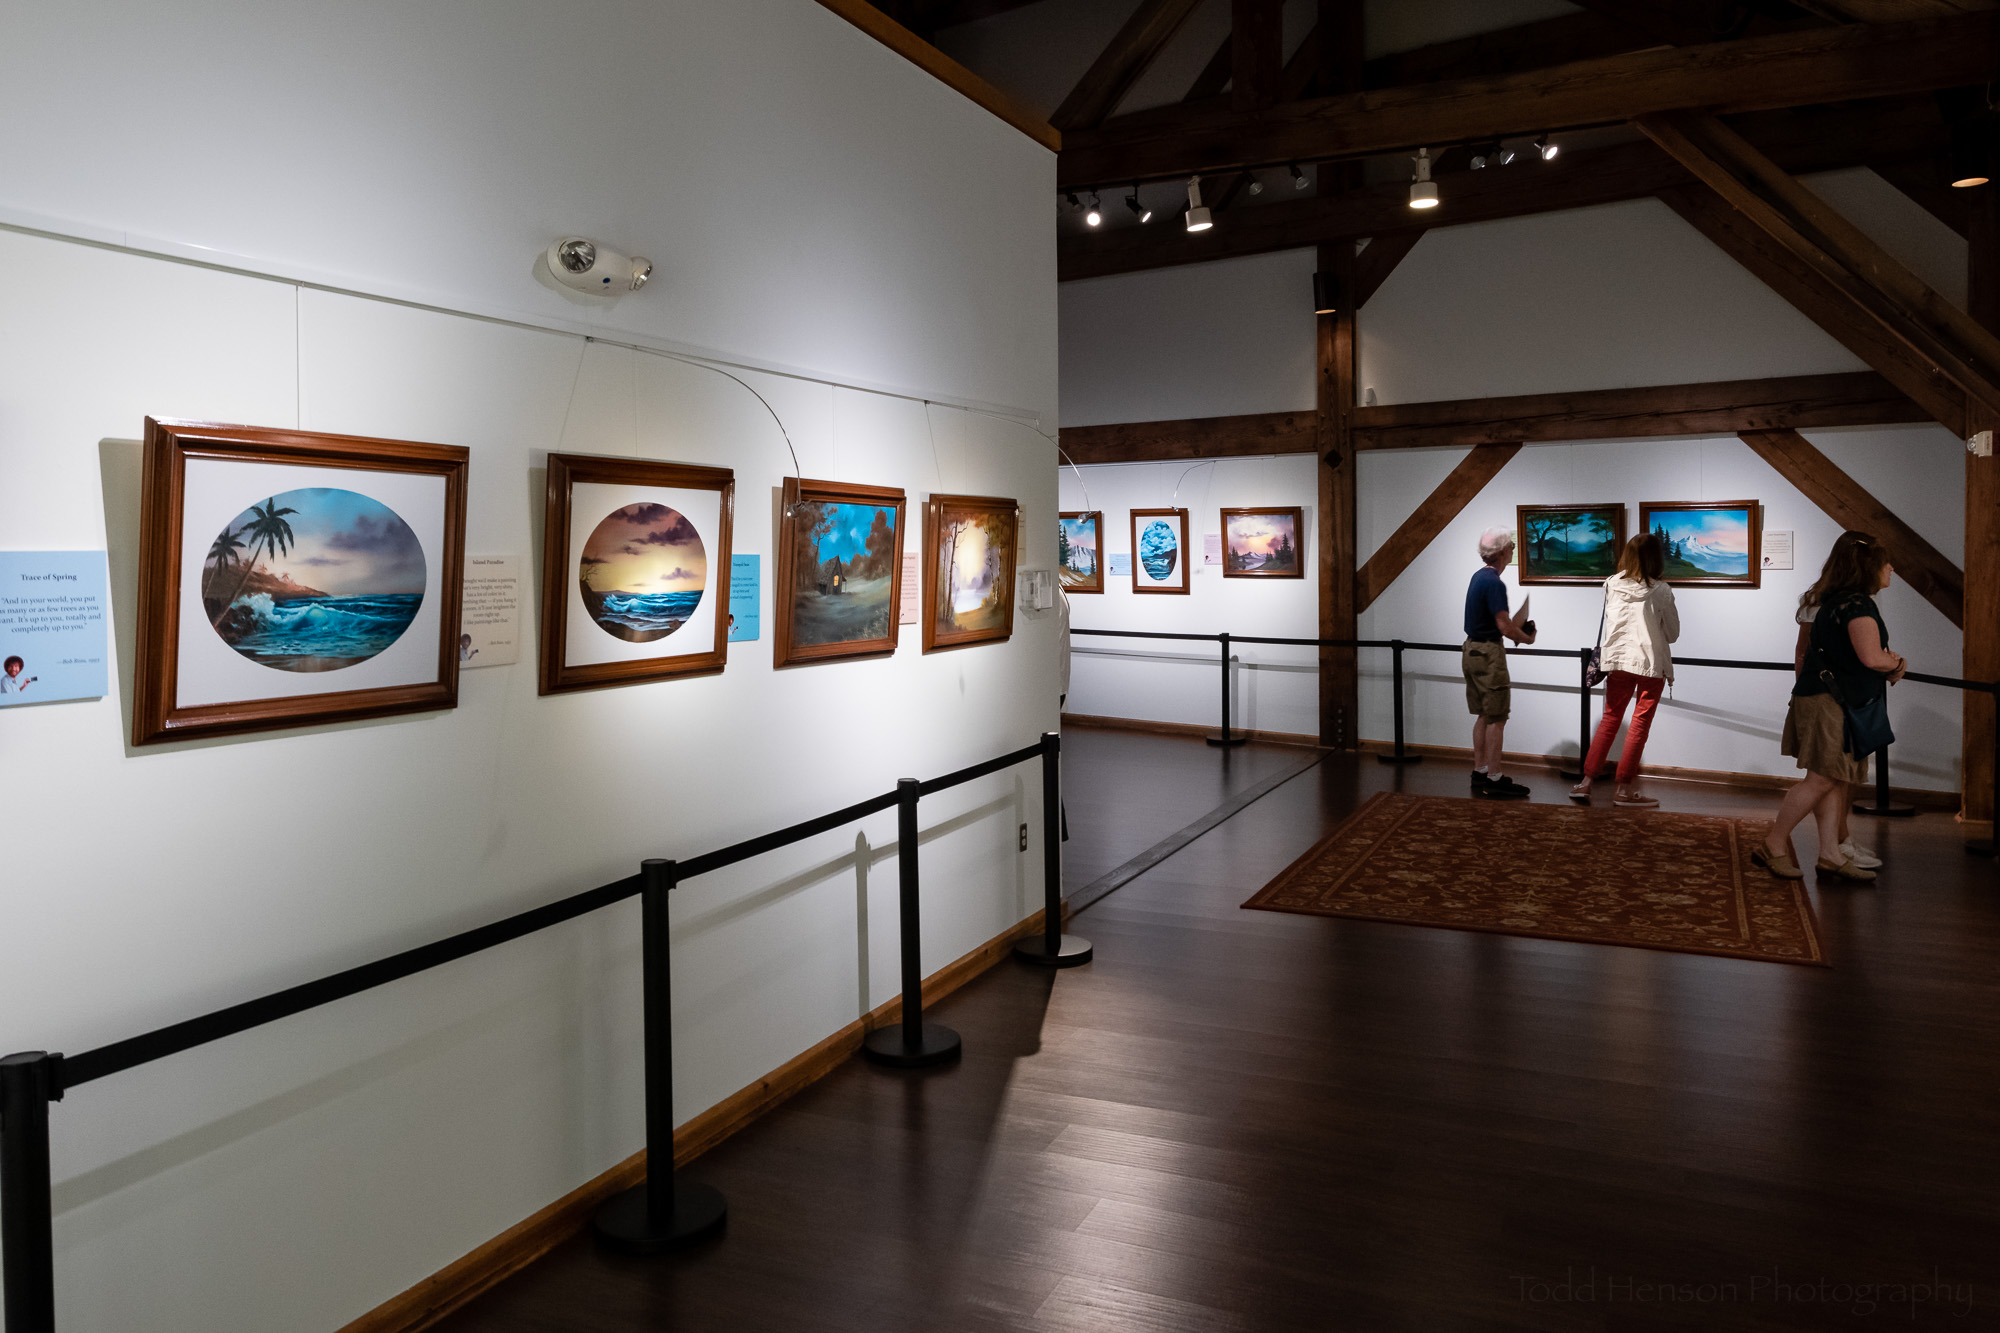 The Franklin Park Performing & Visual Arts Center hosted  Happy Accidents , an exhibit of original Bob Ross paintings.